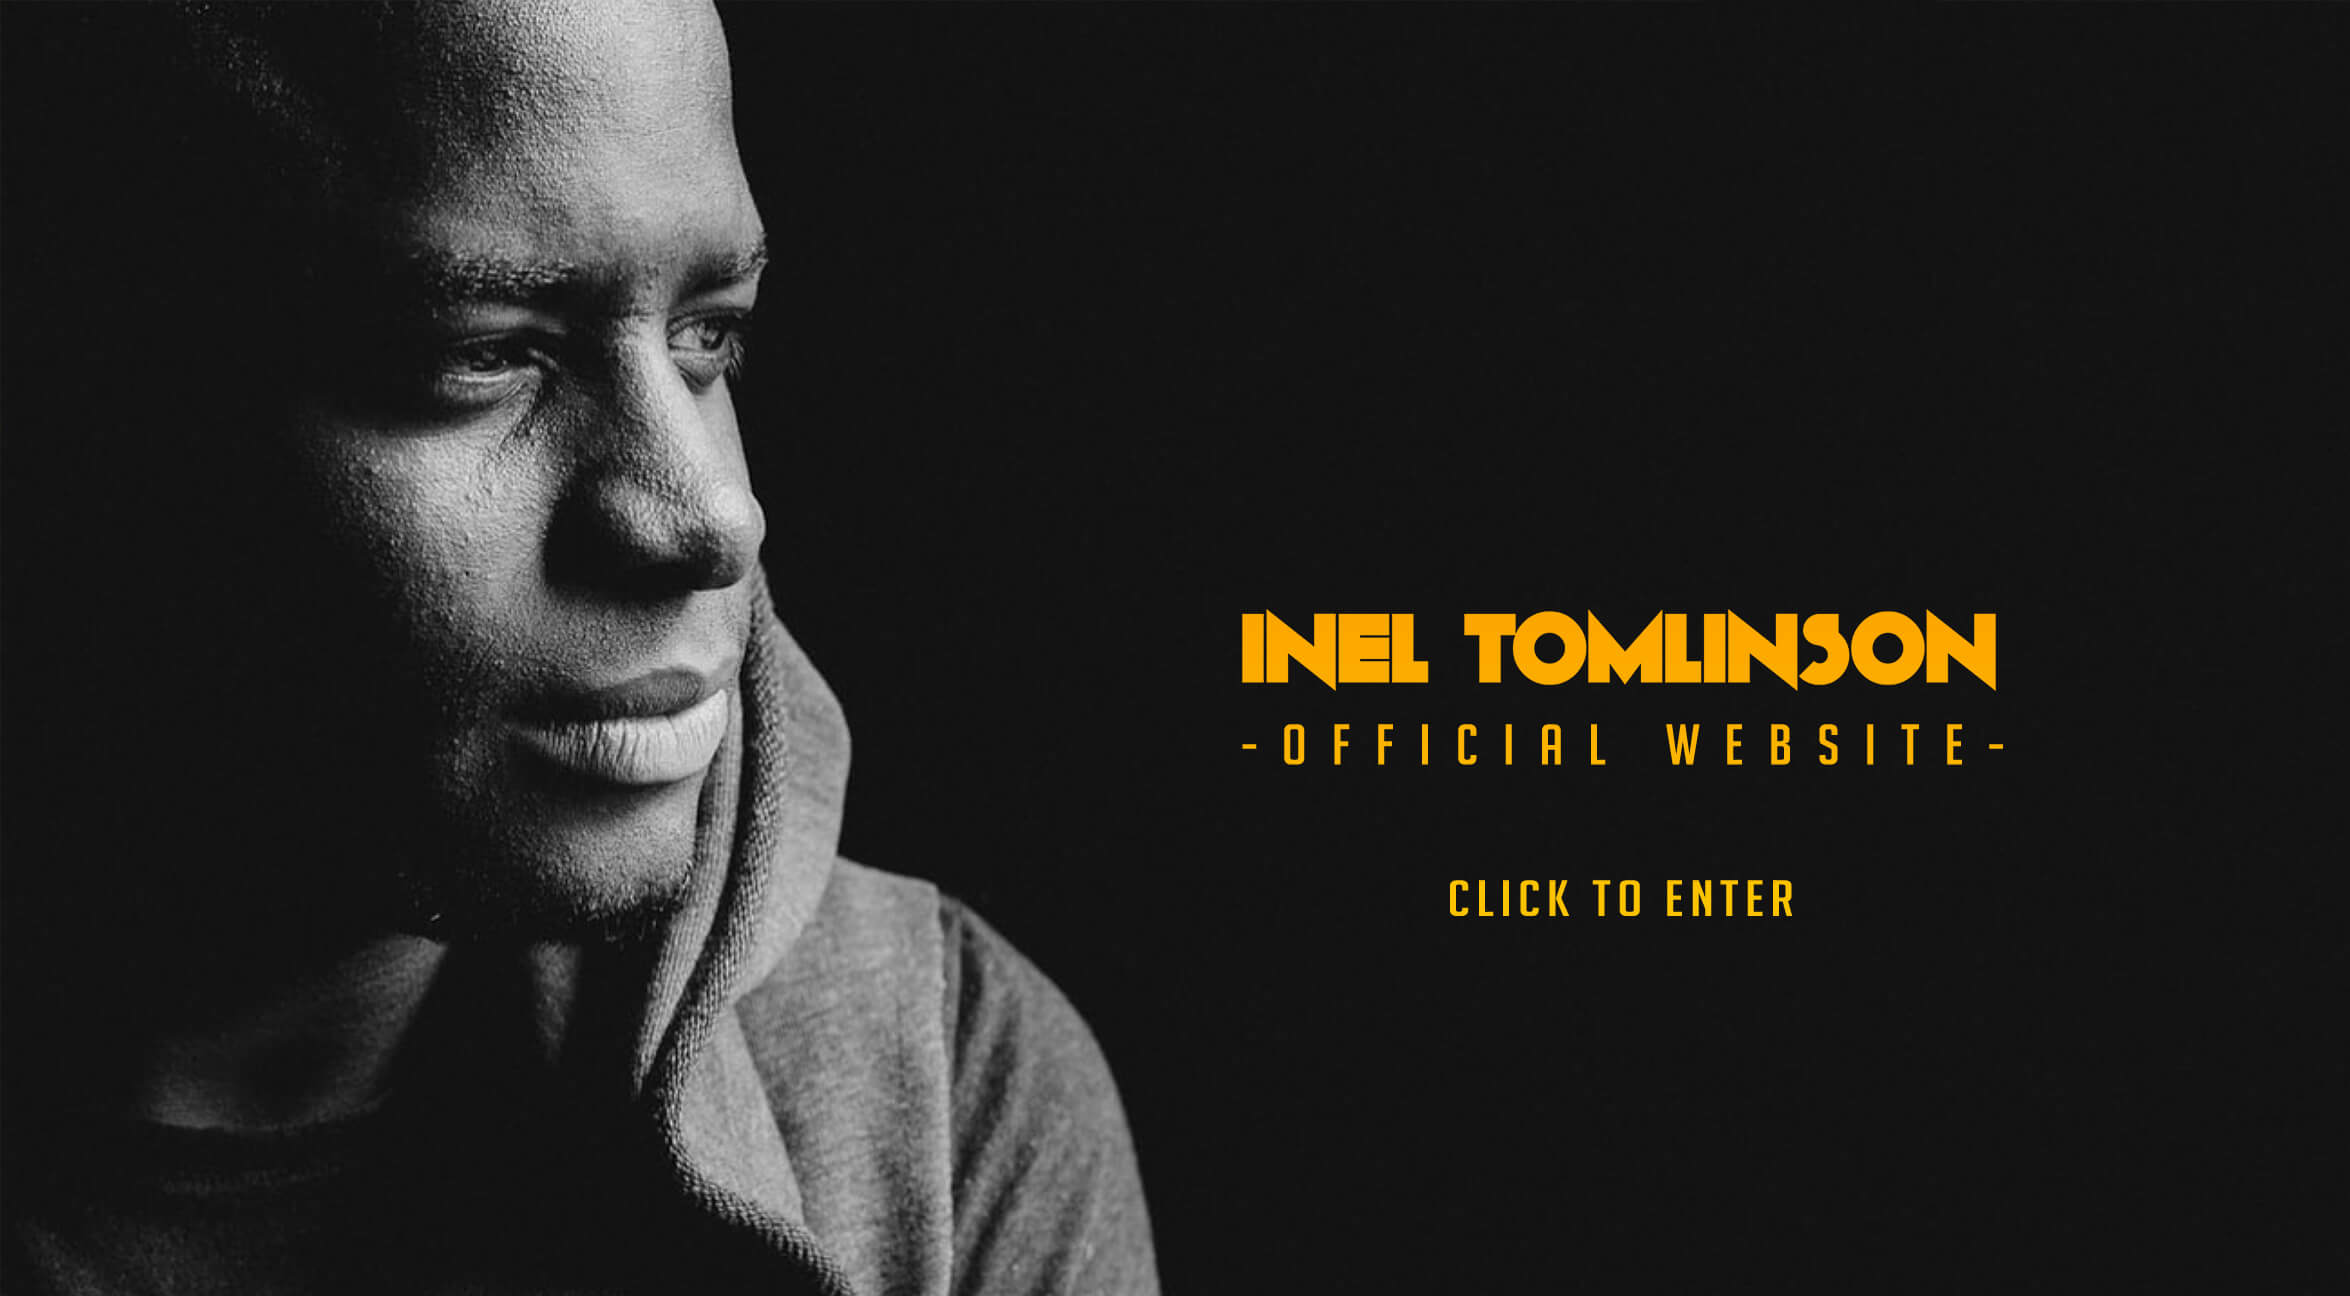 Inel Tomlinson - Click to Enter